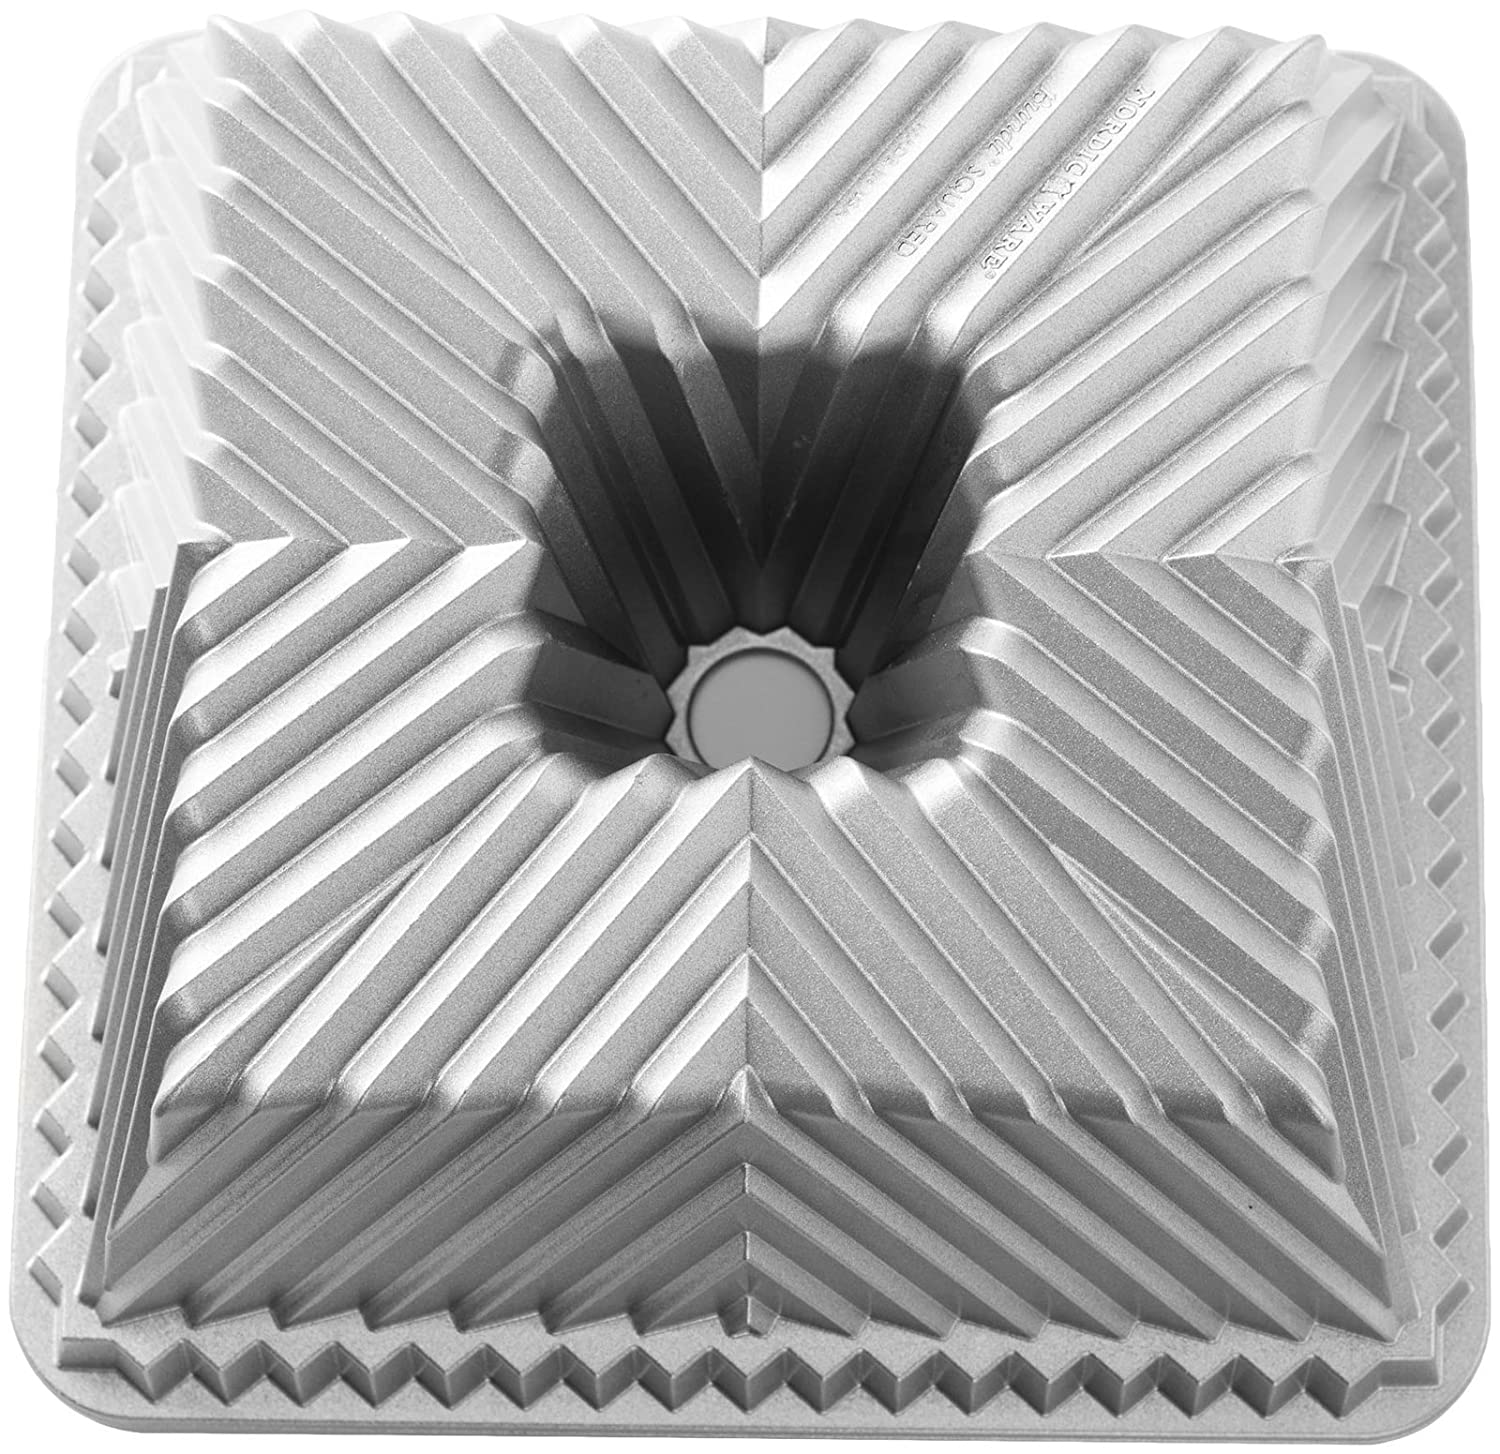 Nordic Ware 80537 Squared Bundt Cake Pan, One Size, Gray